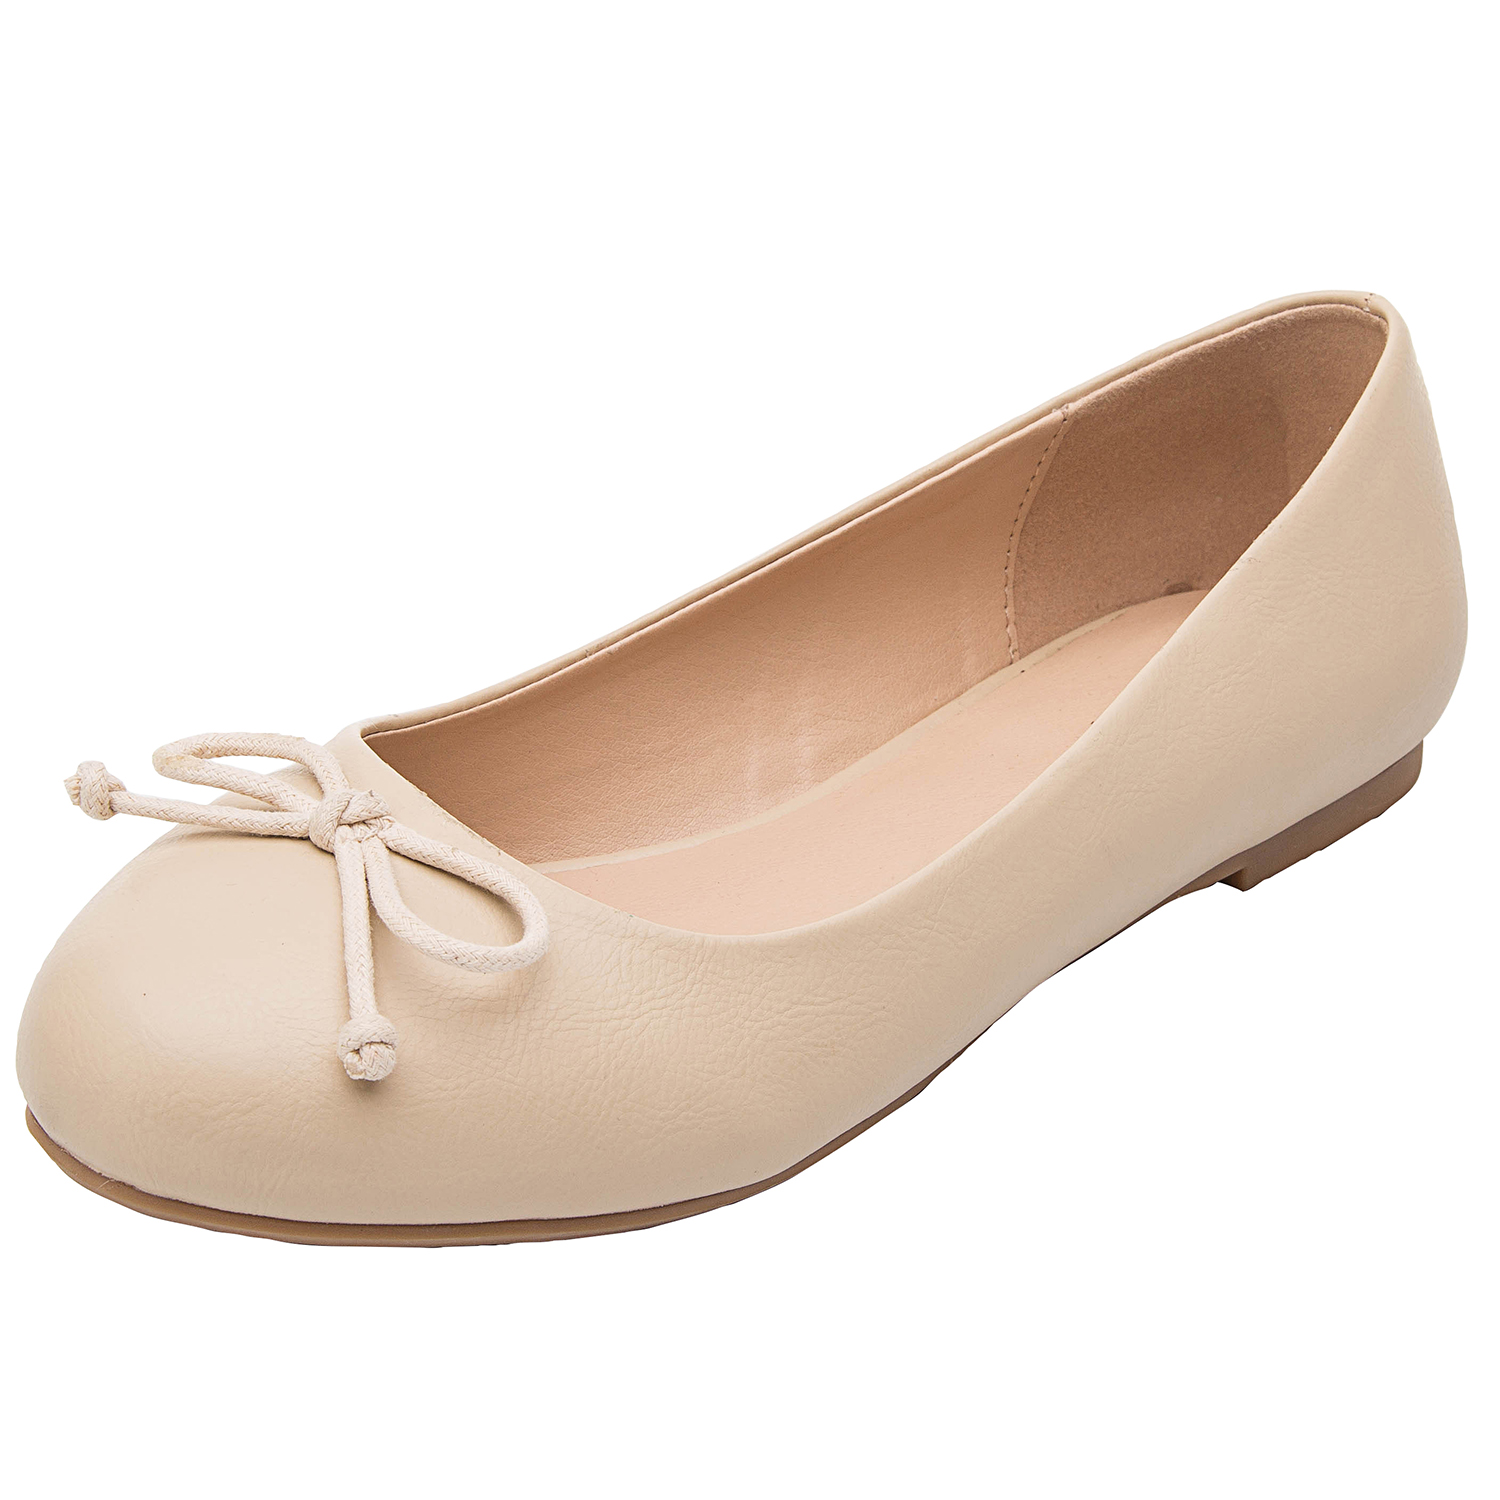 aba618e47f86 US$ 29.99 - Luoika Women's Wide Width Flat Shoes - Comfortable Slip On  Round Toe Ballet Flats - www.luoika-us.com